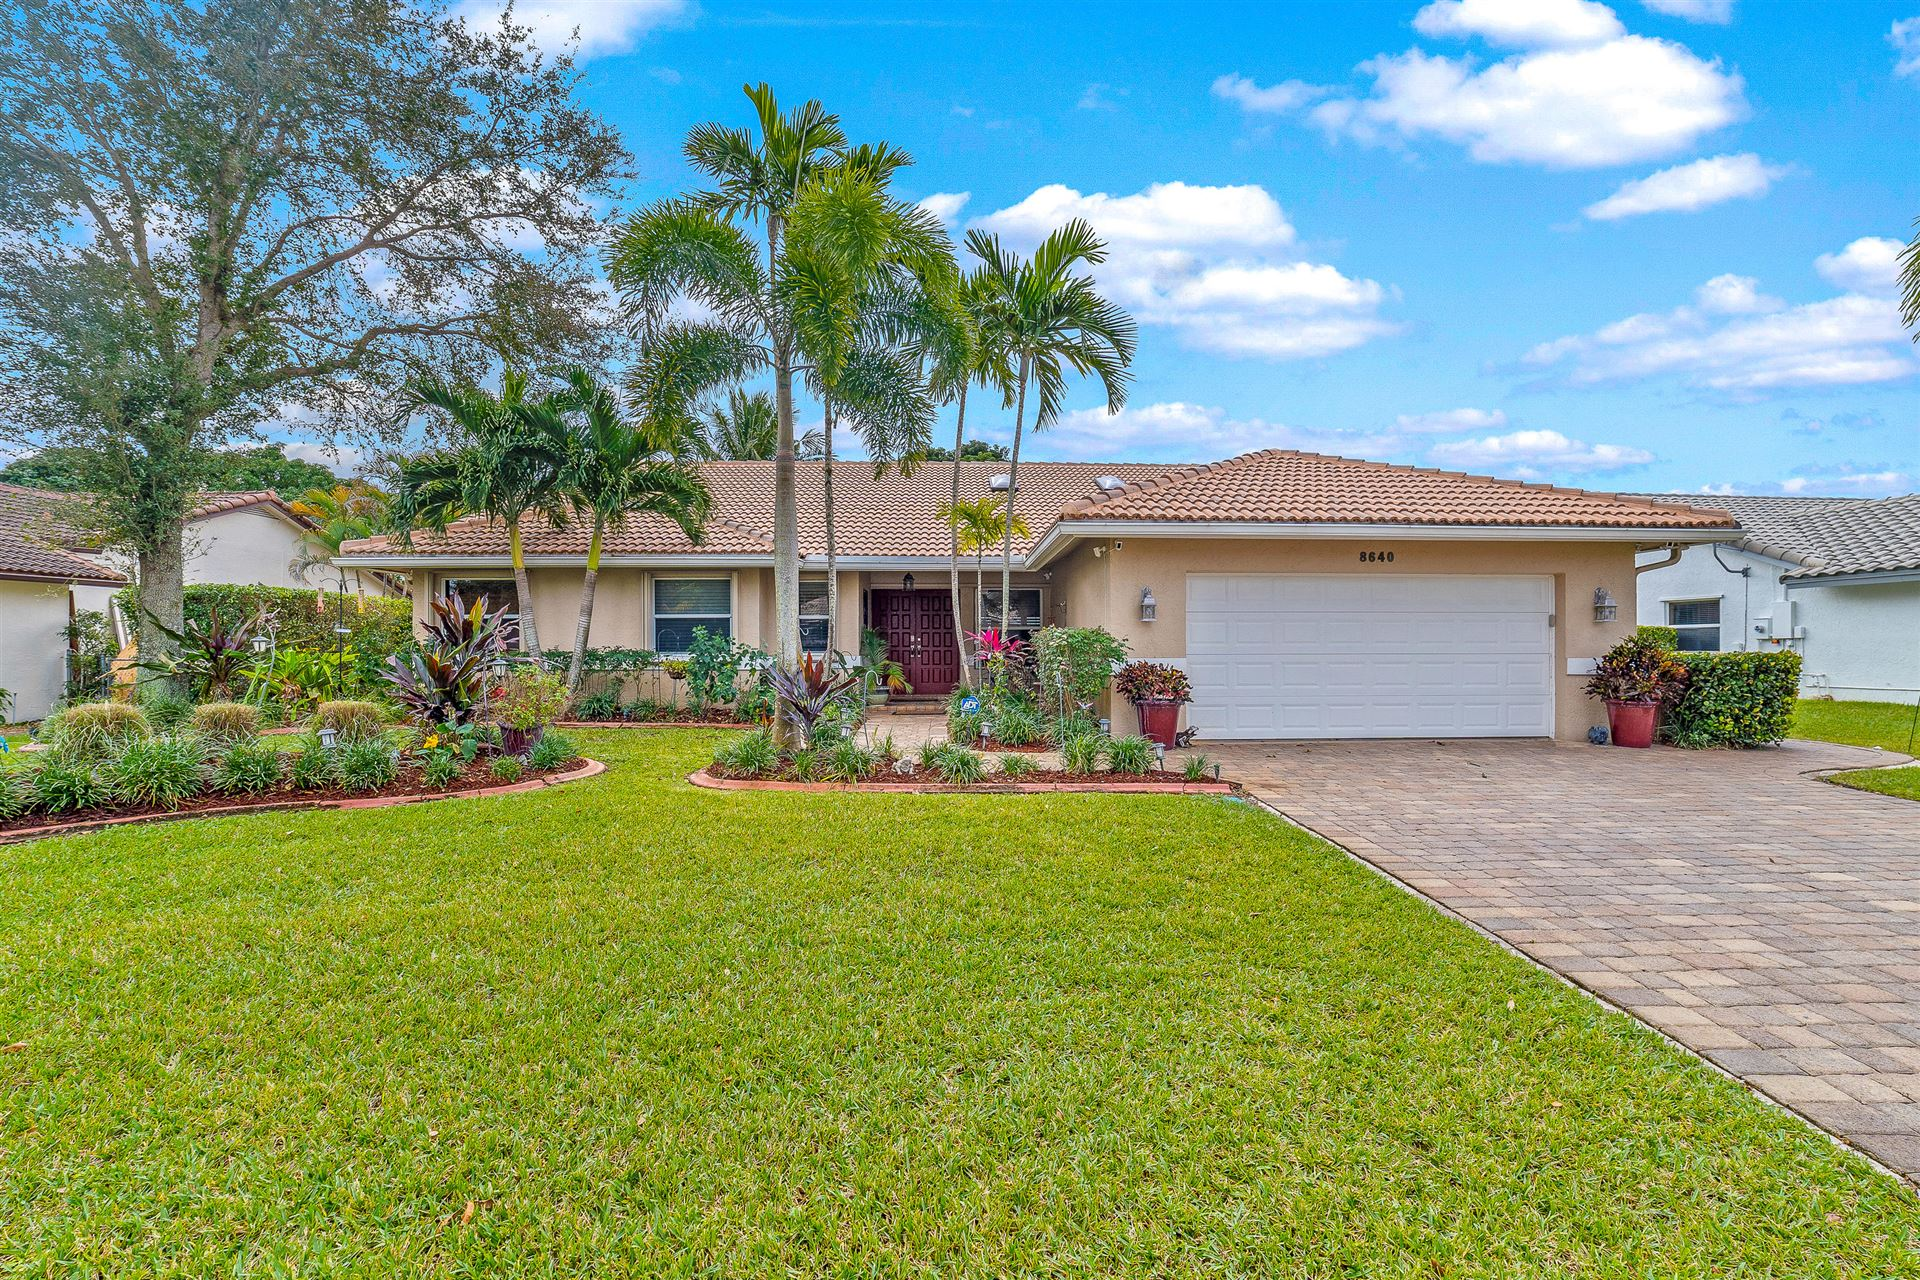 8640 NW 57th Court, Coral Springs, FL 33067 - #: RX-10682005